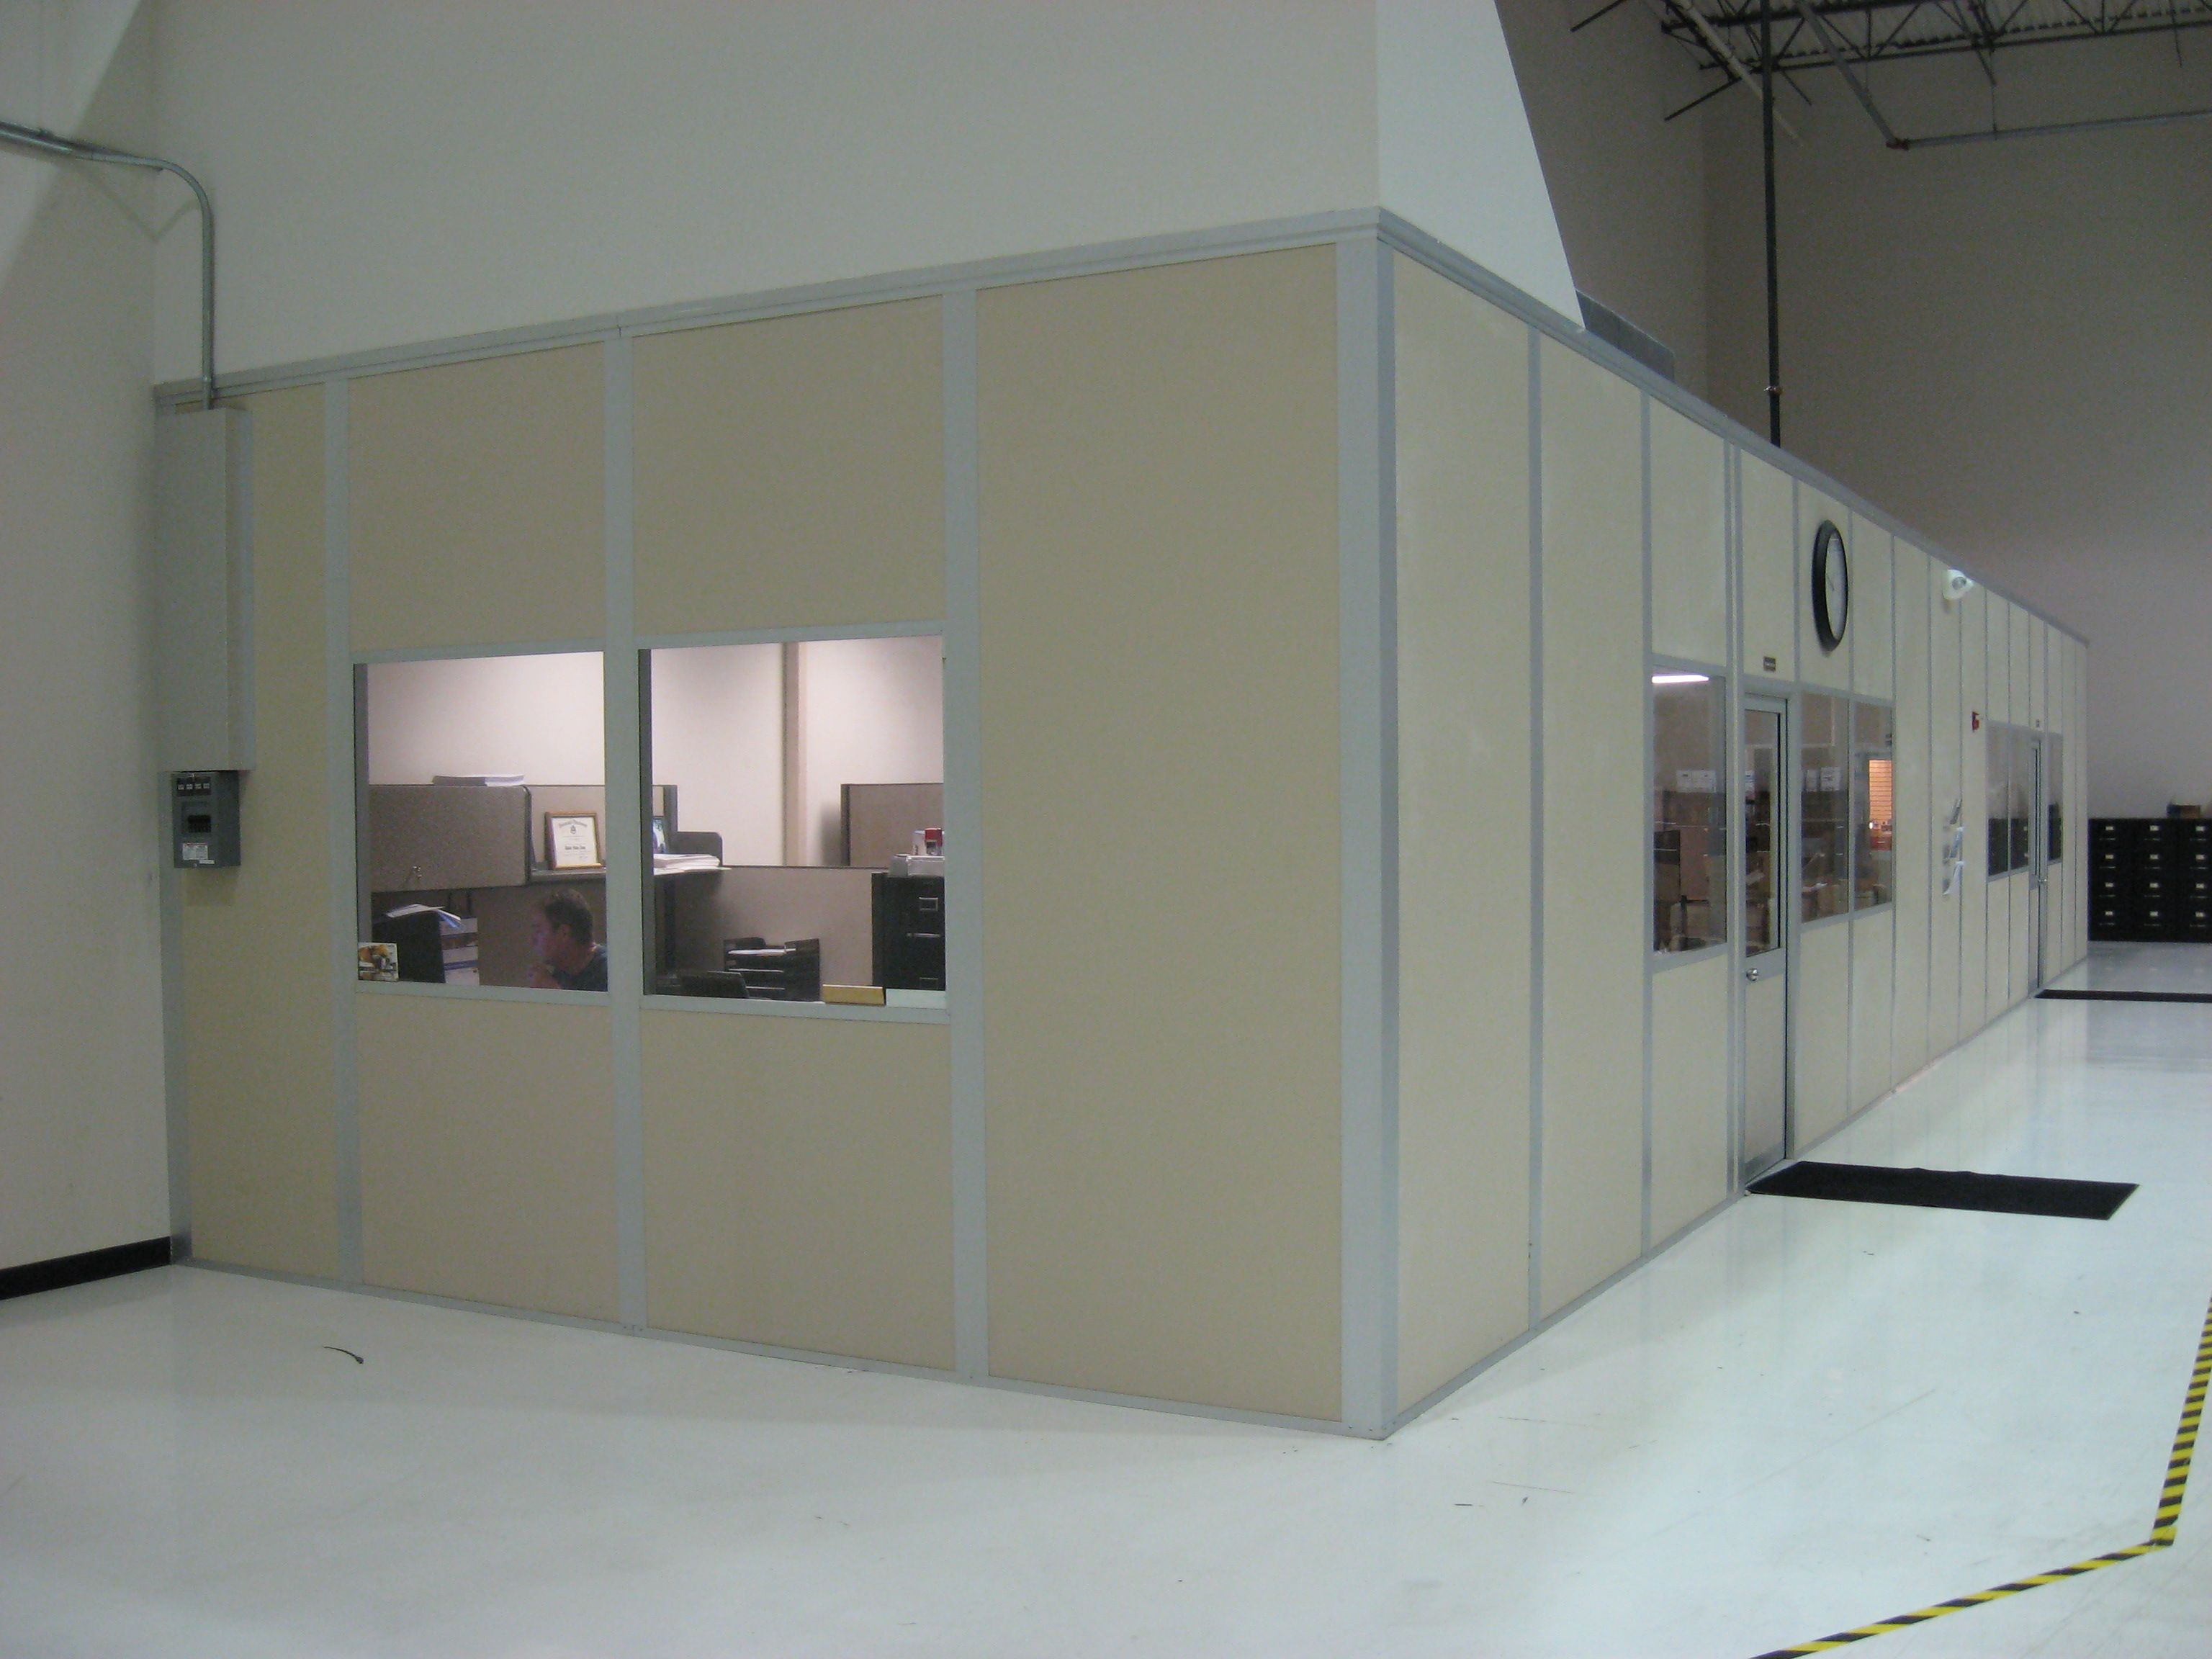 creating office space. Porta-King Modular In-plant Offices Are An Easy Way To Create Office Space Creating